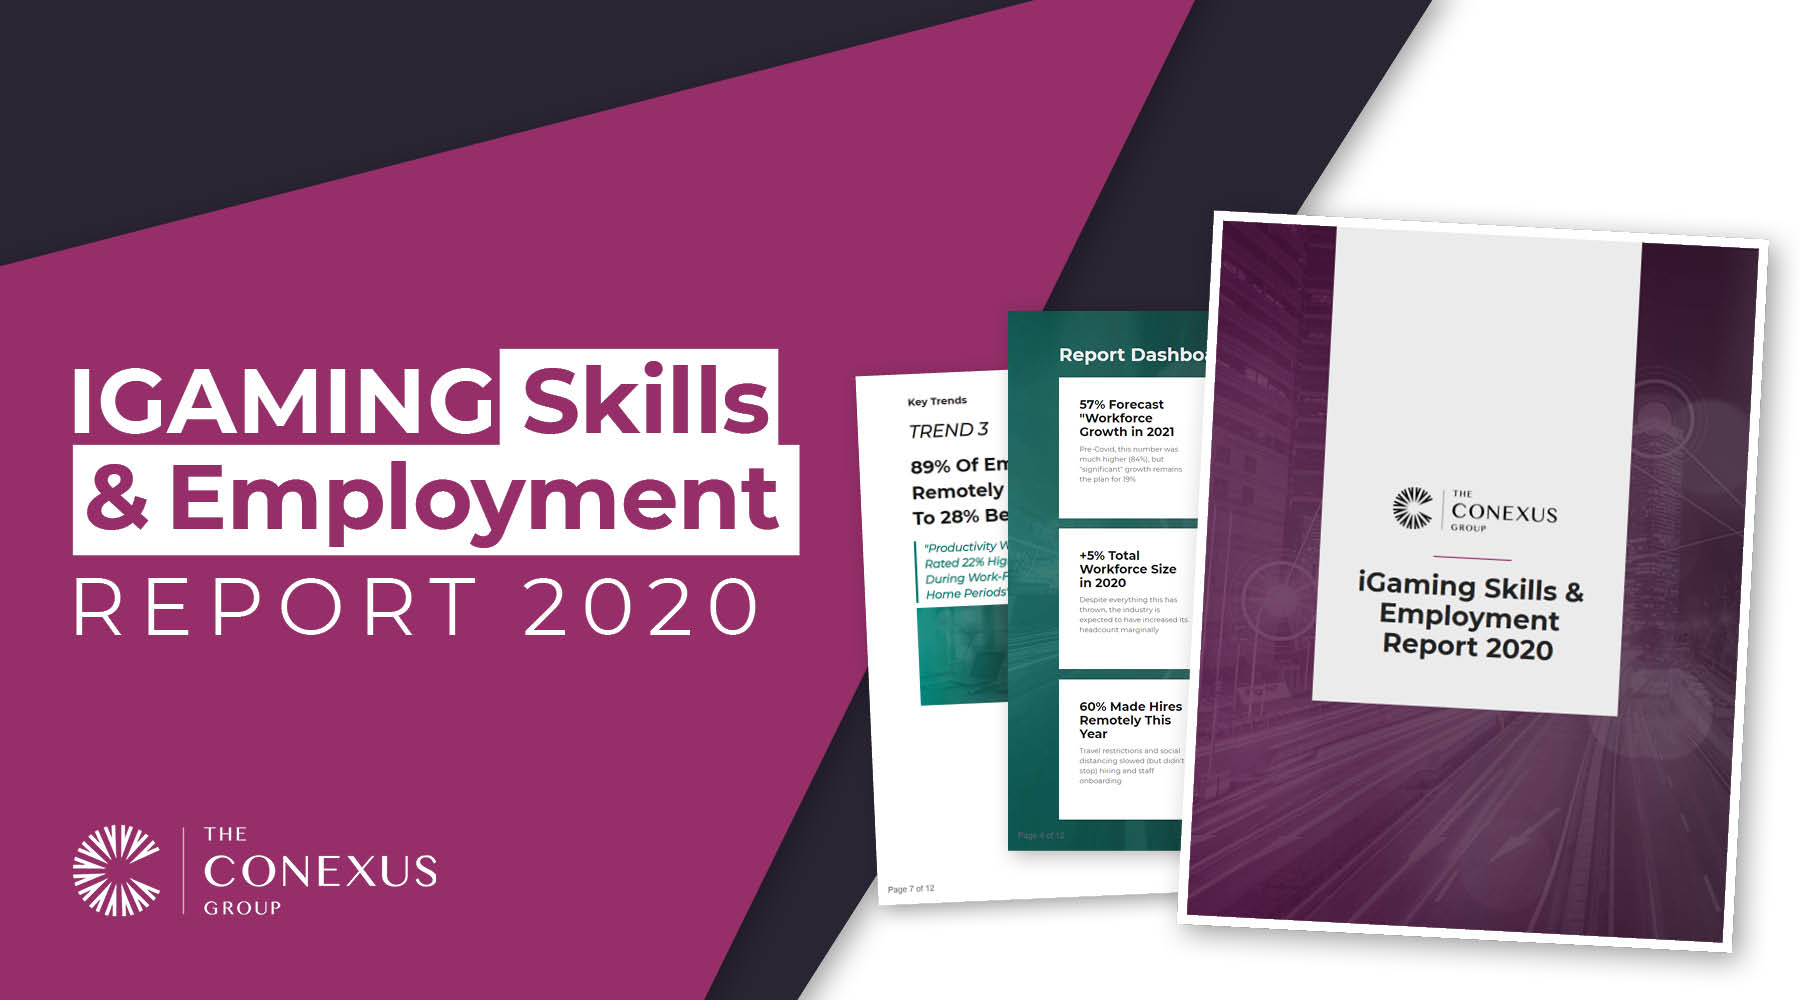 Exclusive: The Conexus iGaming Skills & Employment Report 2020